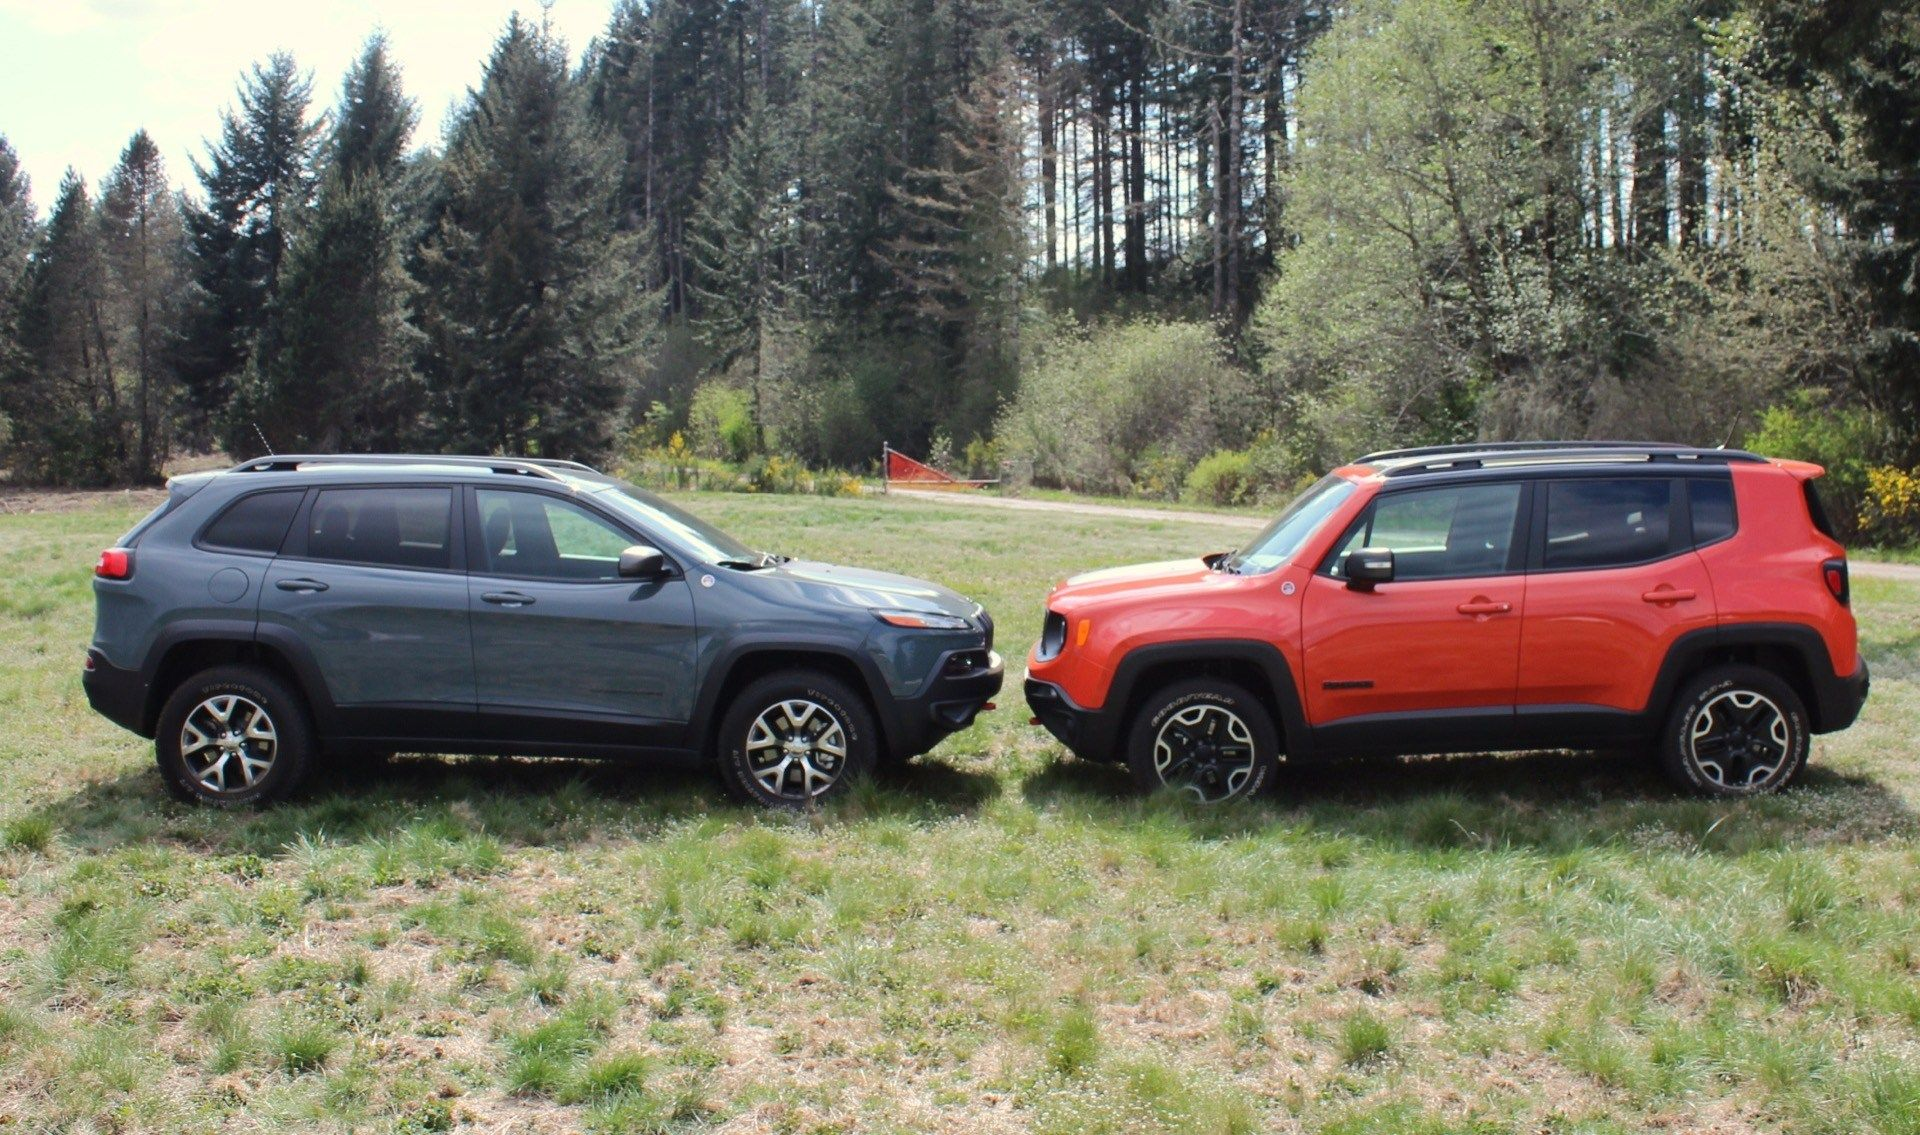 Awesome Jeep Renegade Vs Ford Escape